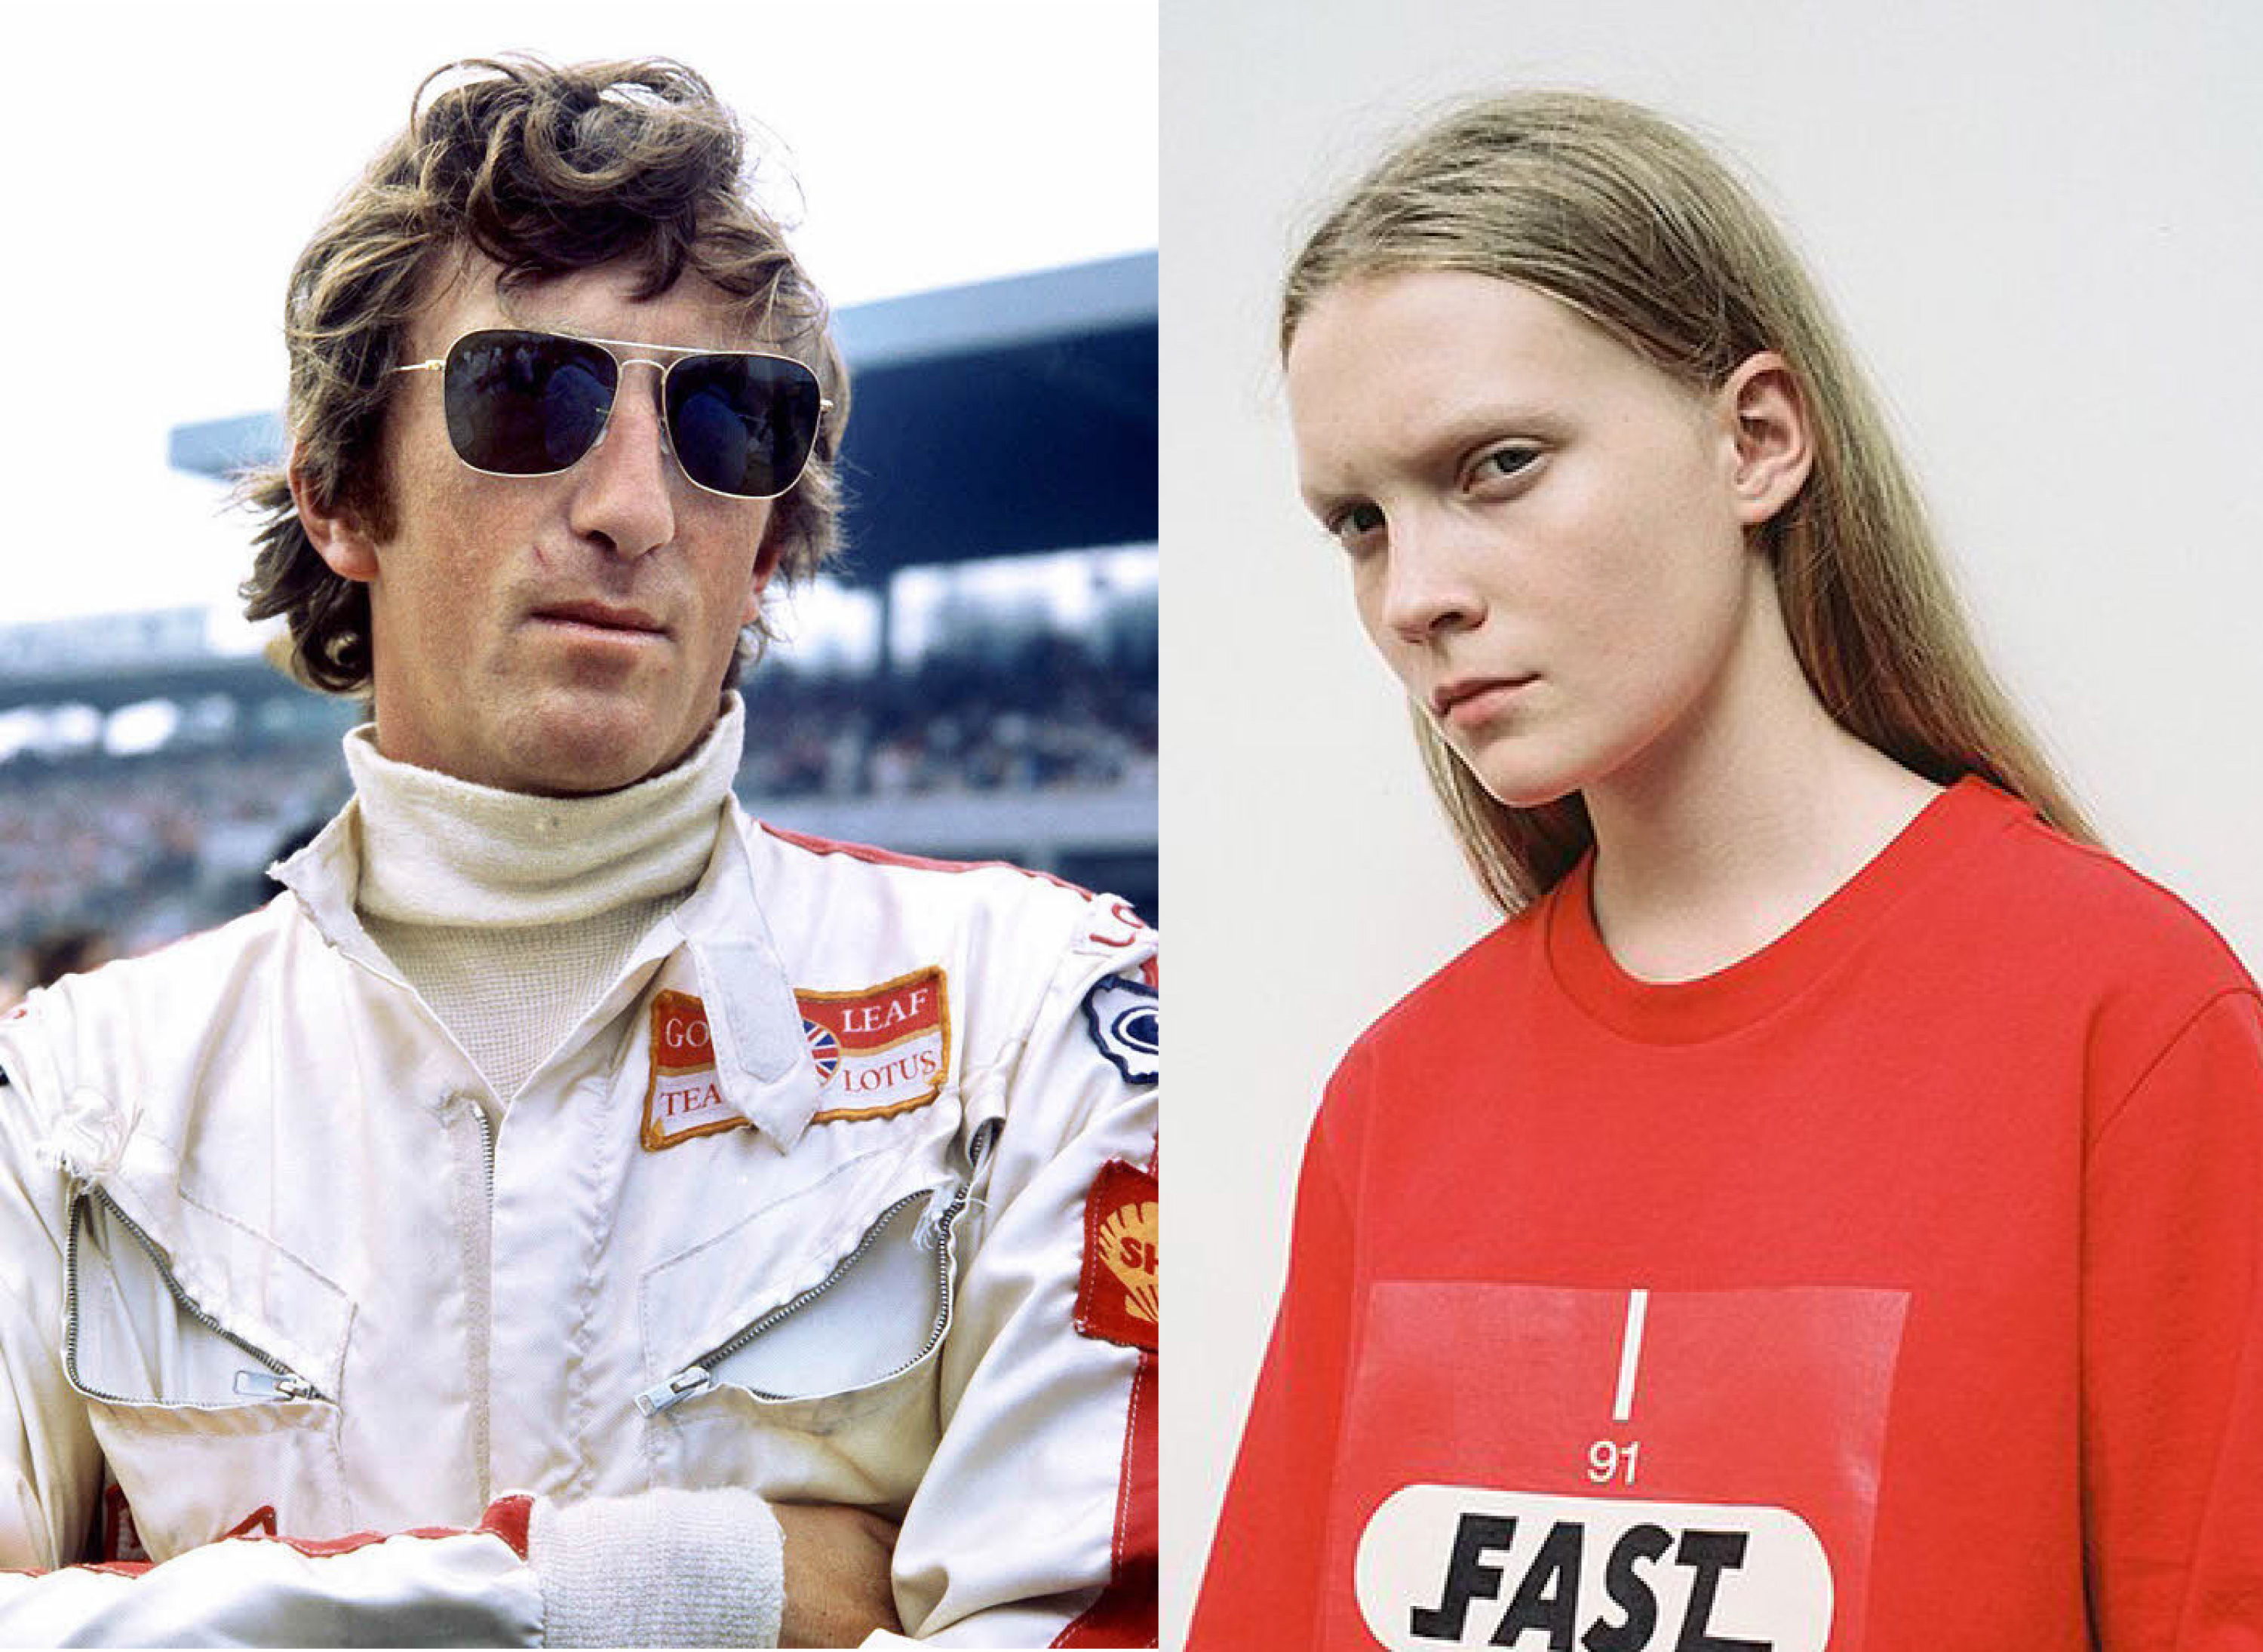 Jochen Rindt in his racing Overall with sponsor patches attached vis a vis a Model in a motorsport inspired red T-shirt